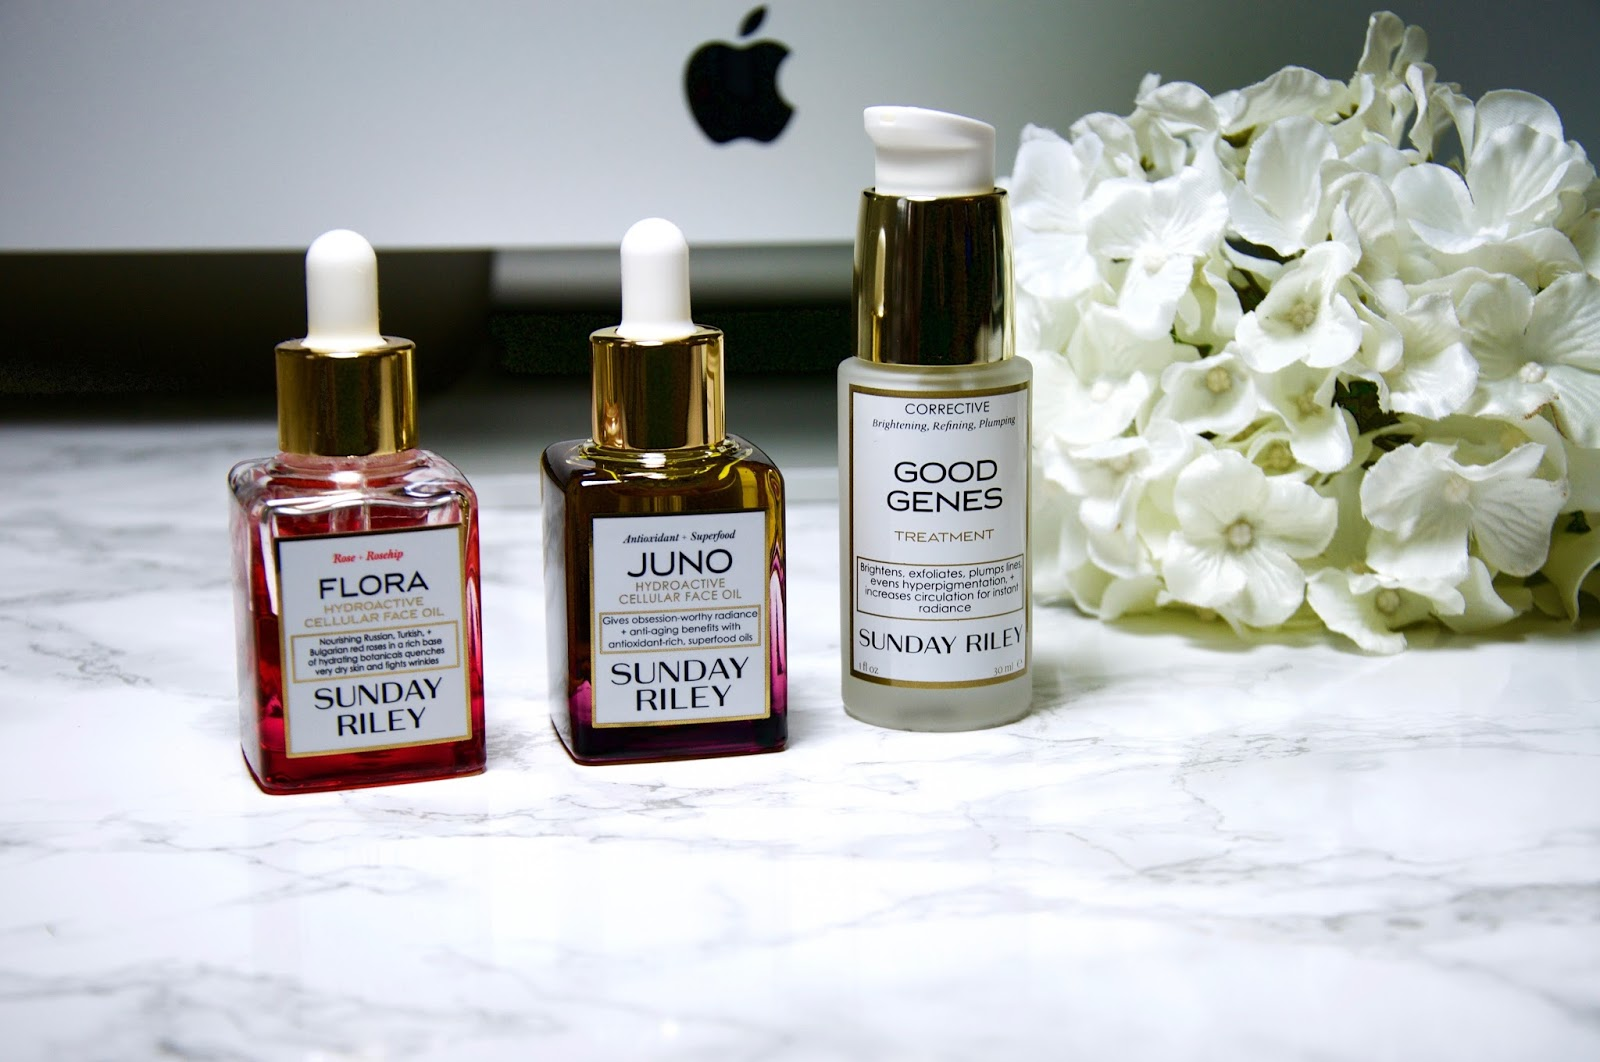 sunday riley ,sunday riled good genes treatment review, sunday riley flora hydroactive cellular face oil, sunday riley juno hydroactive cellular face oil review